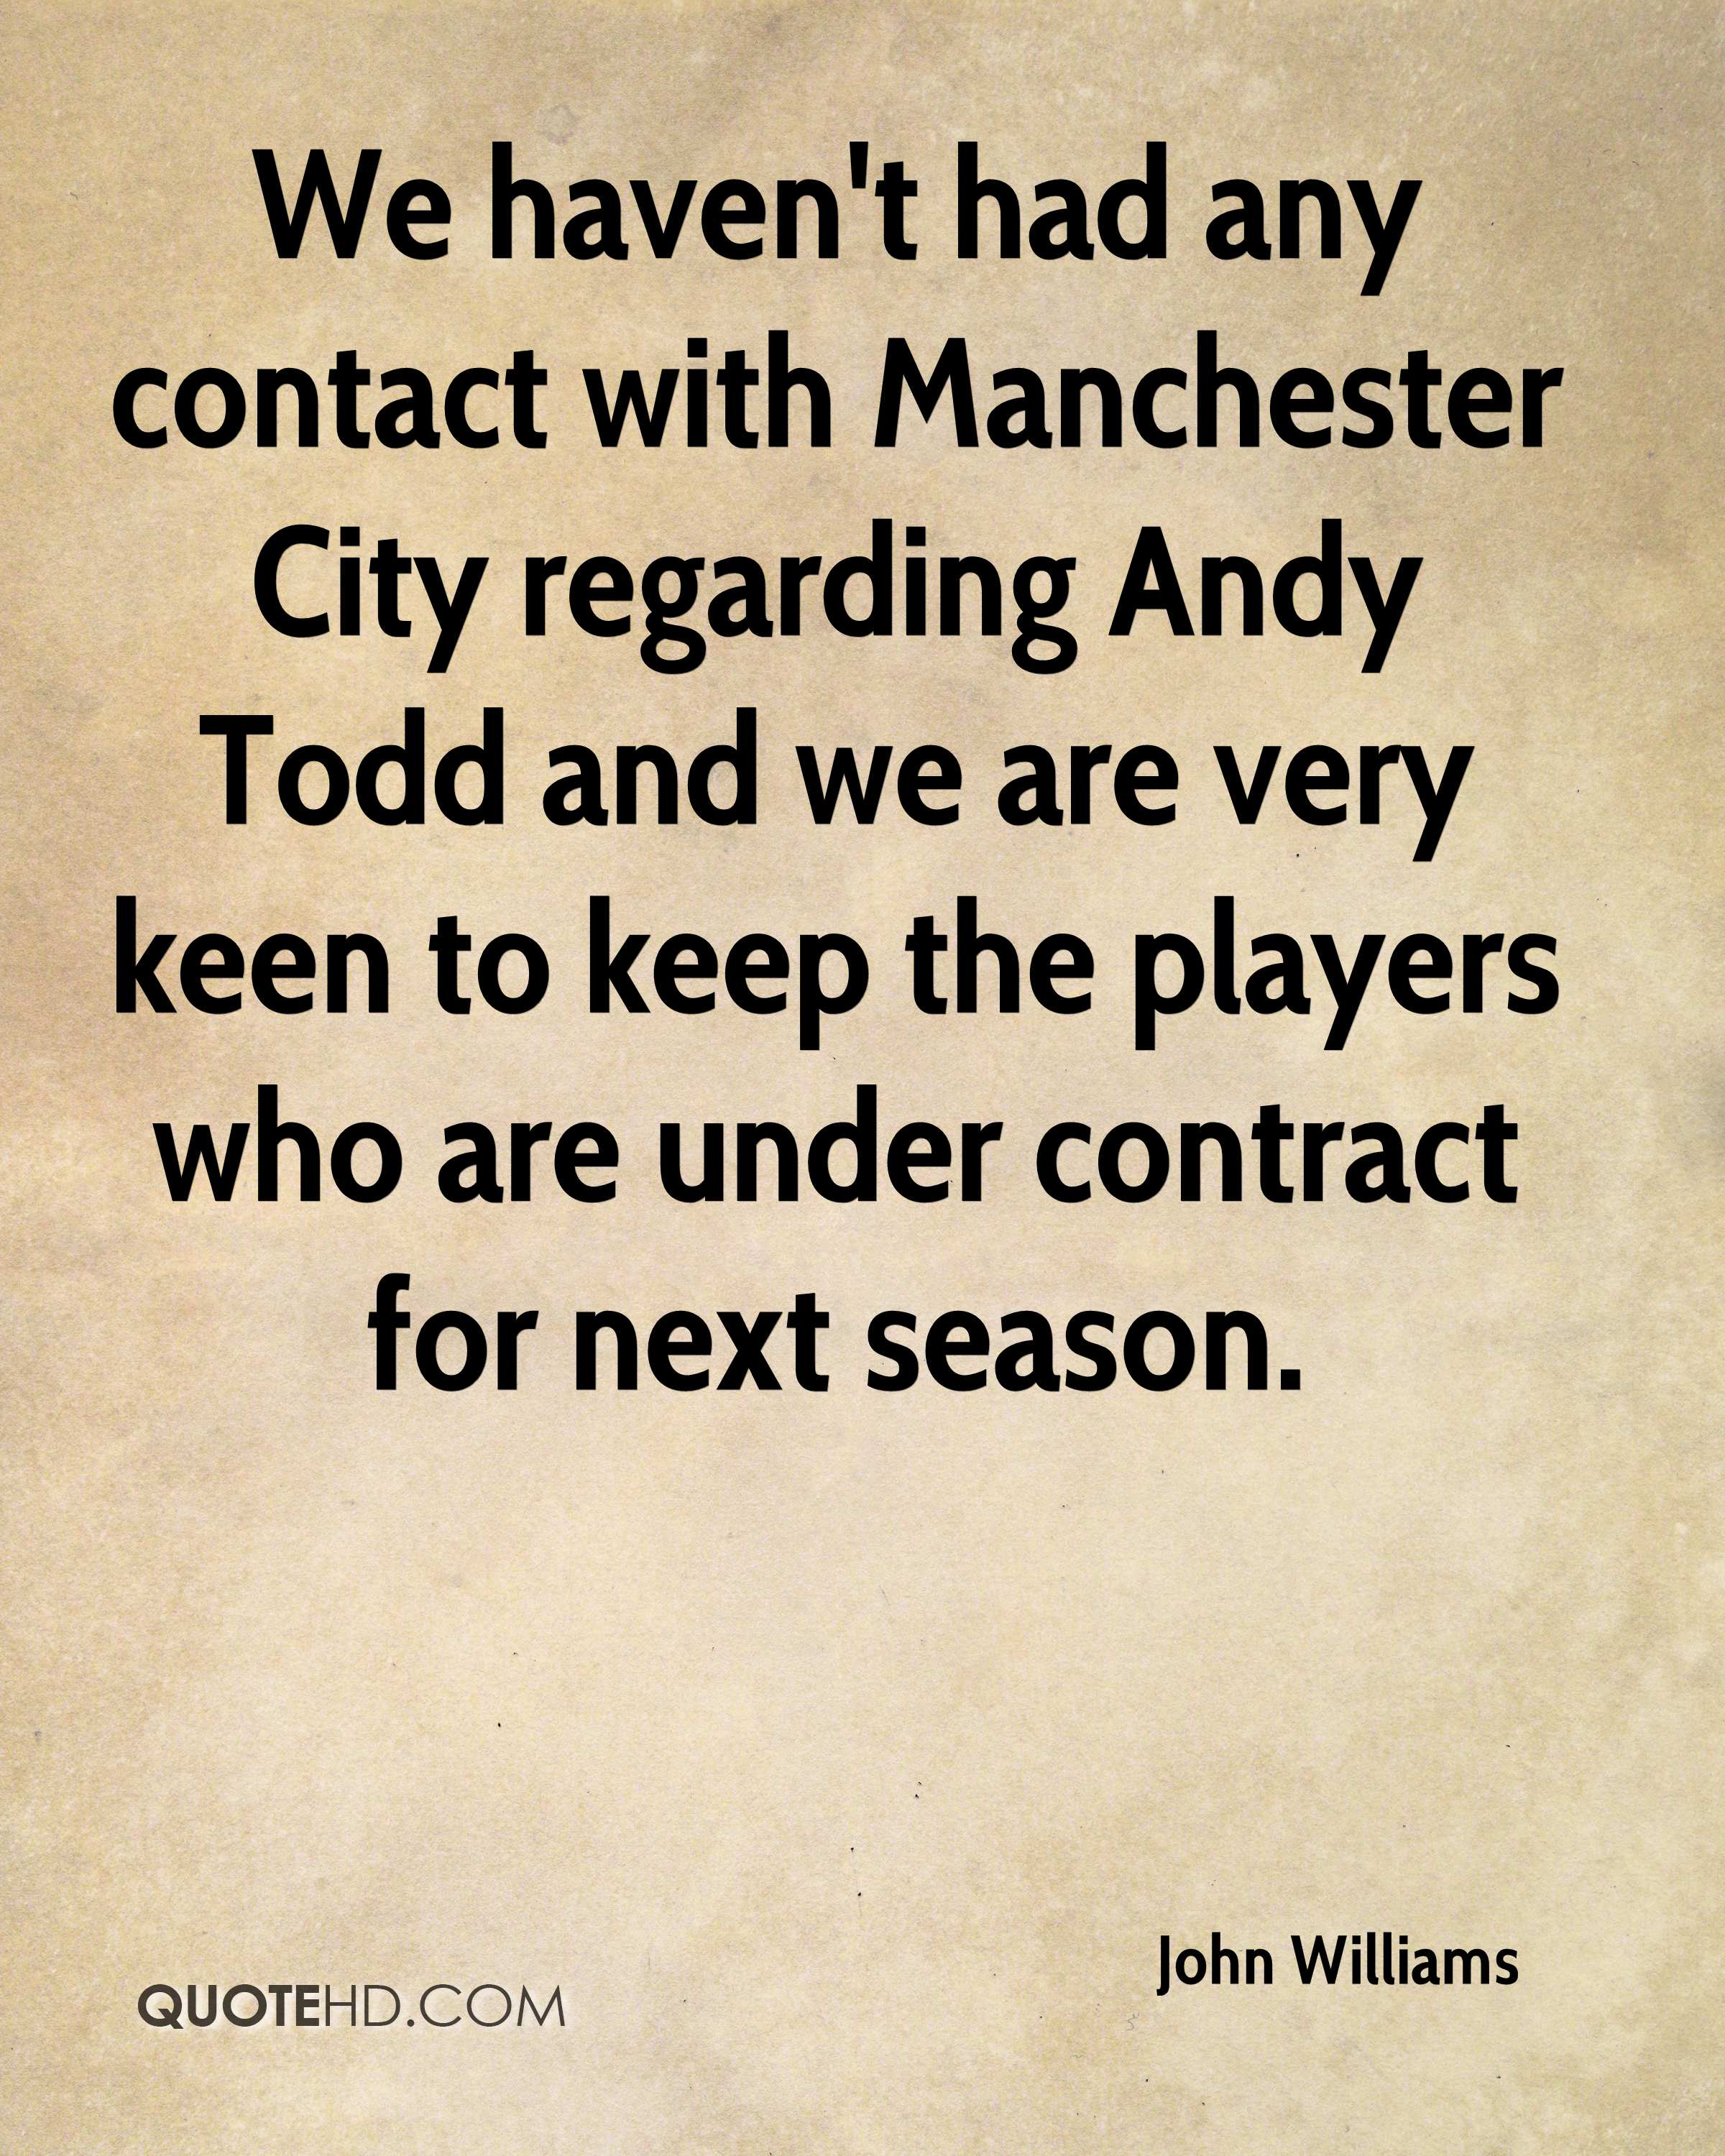 We haven't had any contact with Manchester City regarding Andy Todd and we are very keen to keep the players who are under contract for next season.